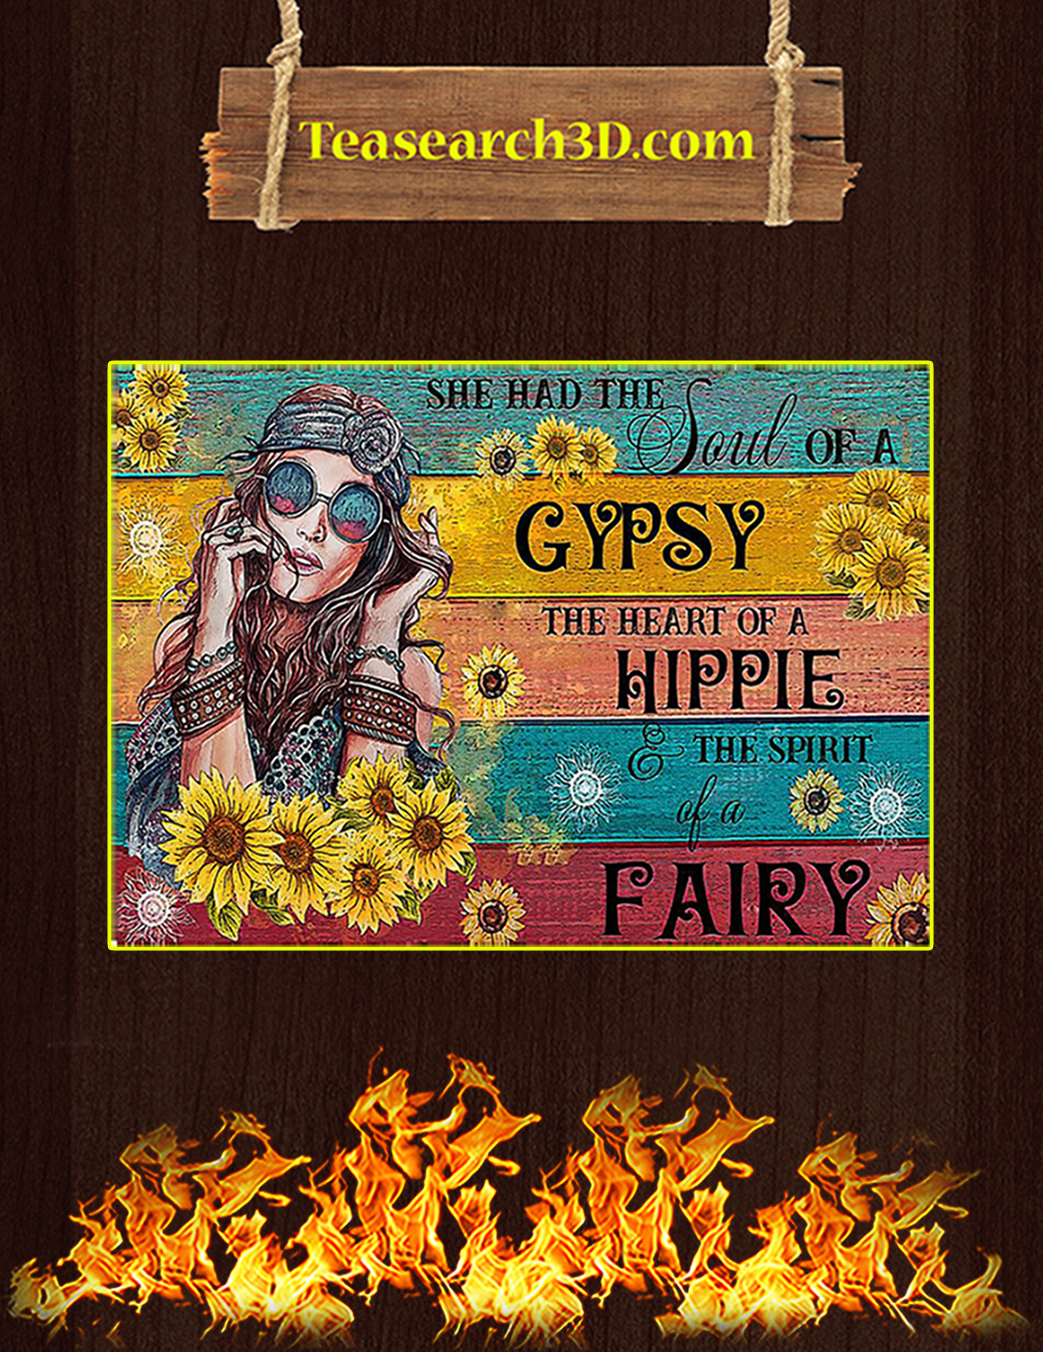 She had the soul of a gyspy the heart of a hippie poster A1